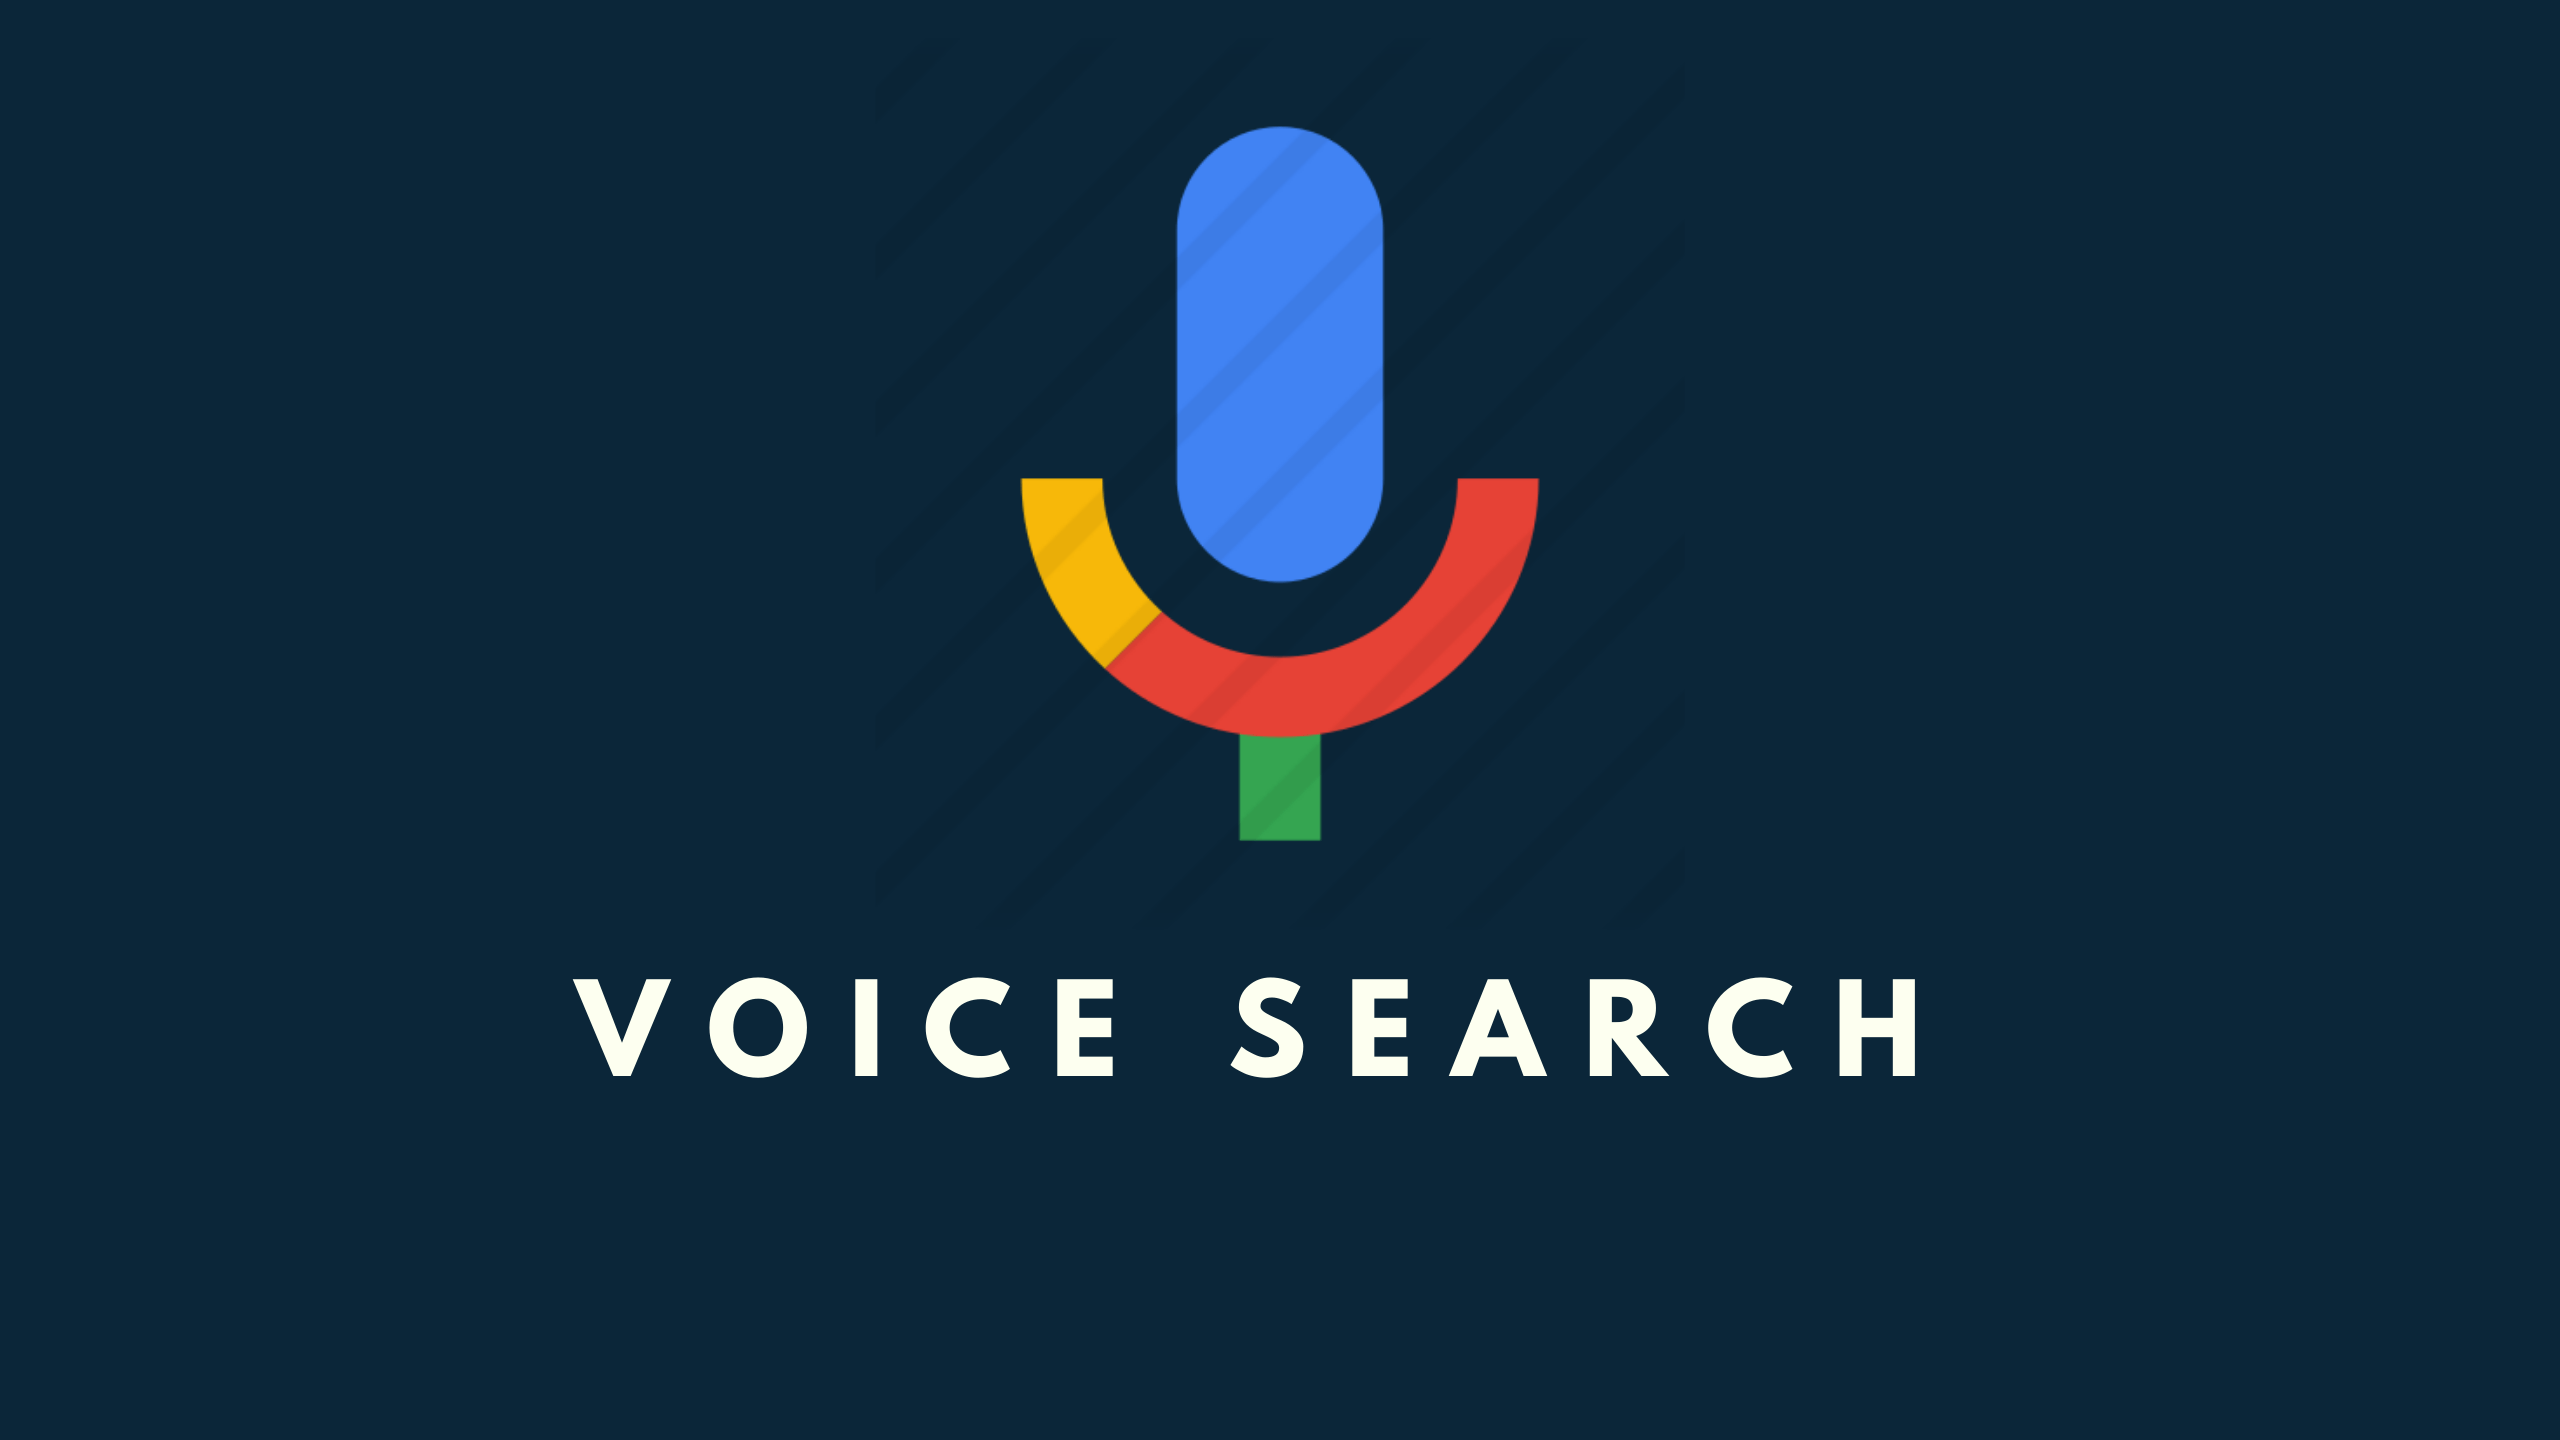 Voice Search Optimization: 6 Big Changes You'll Need to Make